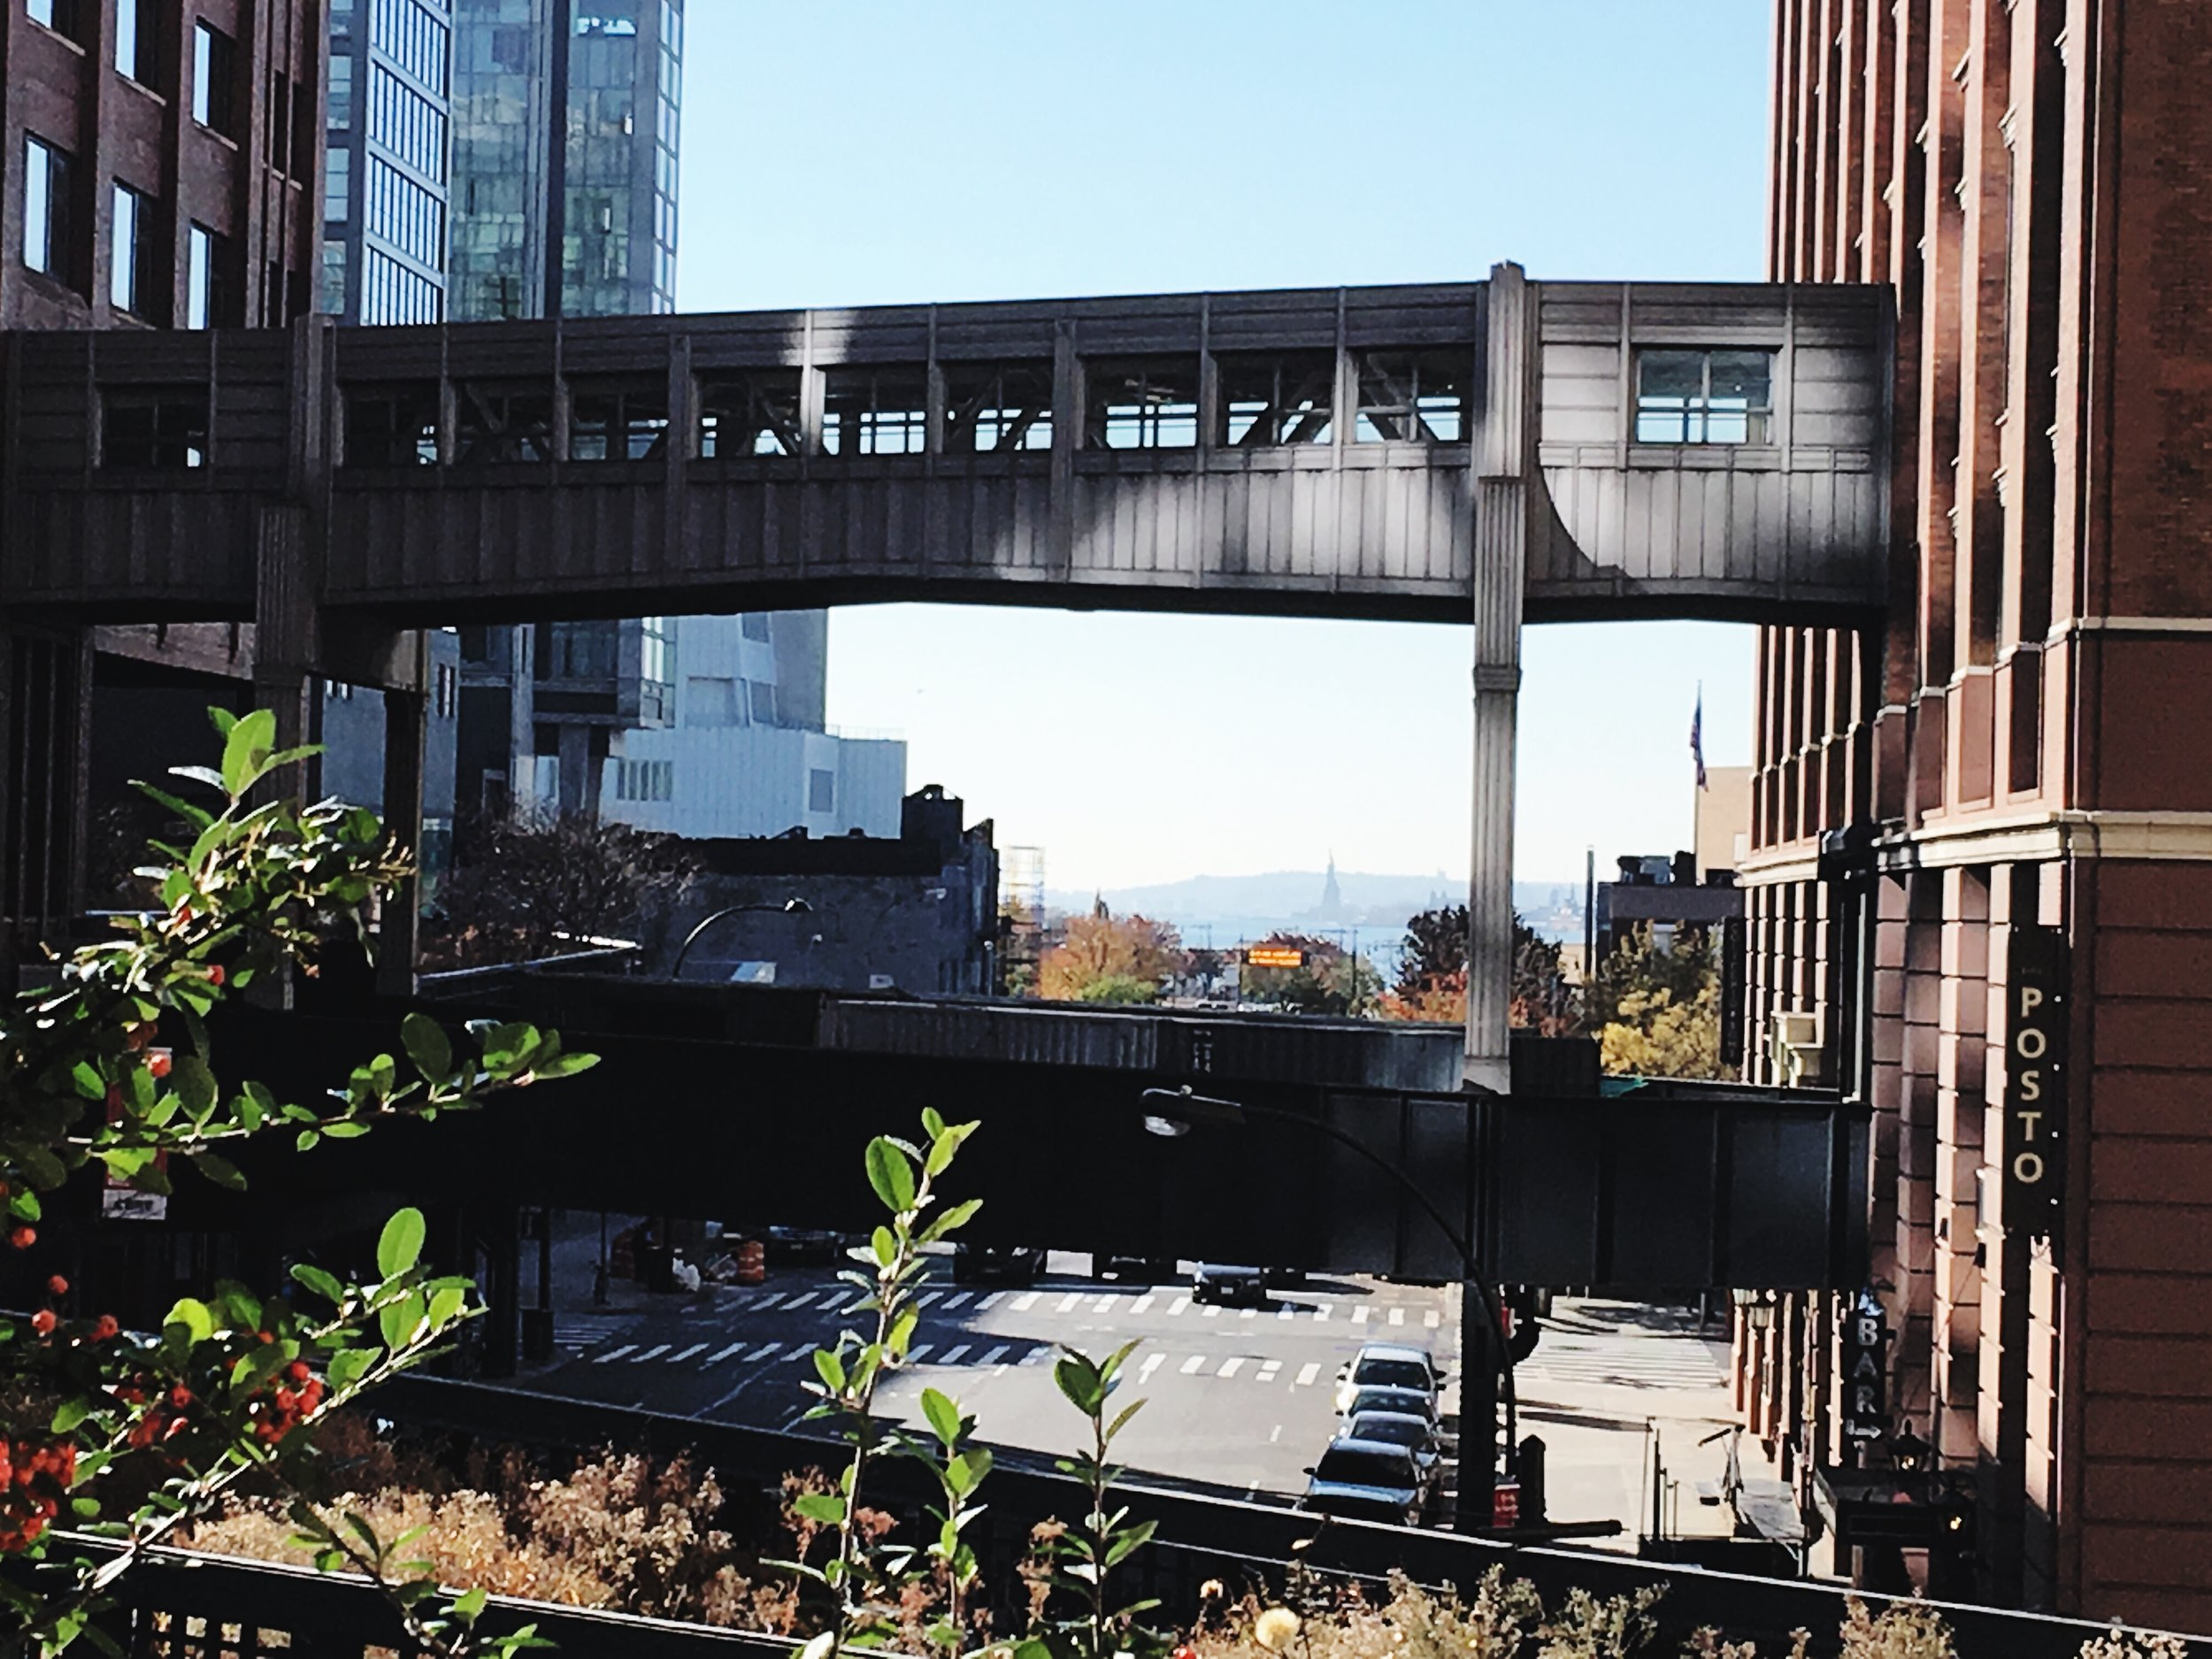 Saturday morning weather was perfect so I walked the 1.45 mile long  High Line Park   built on a historic freight rail line elevated above the streets on Manhattan's West Side.